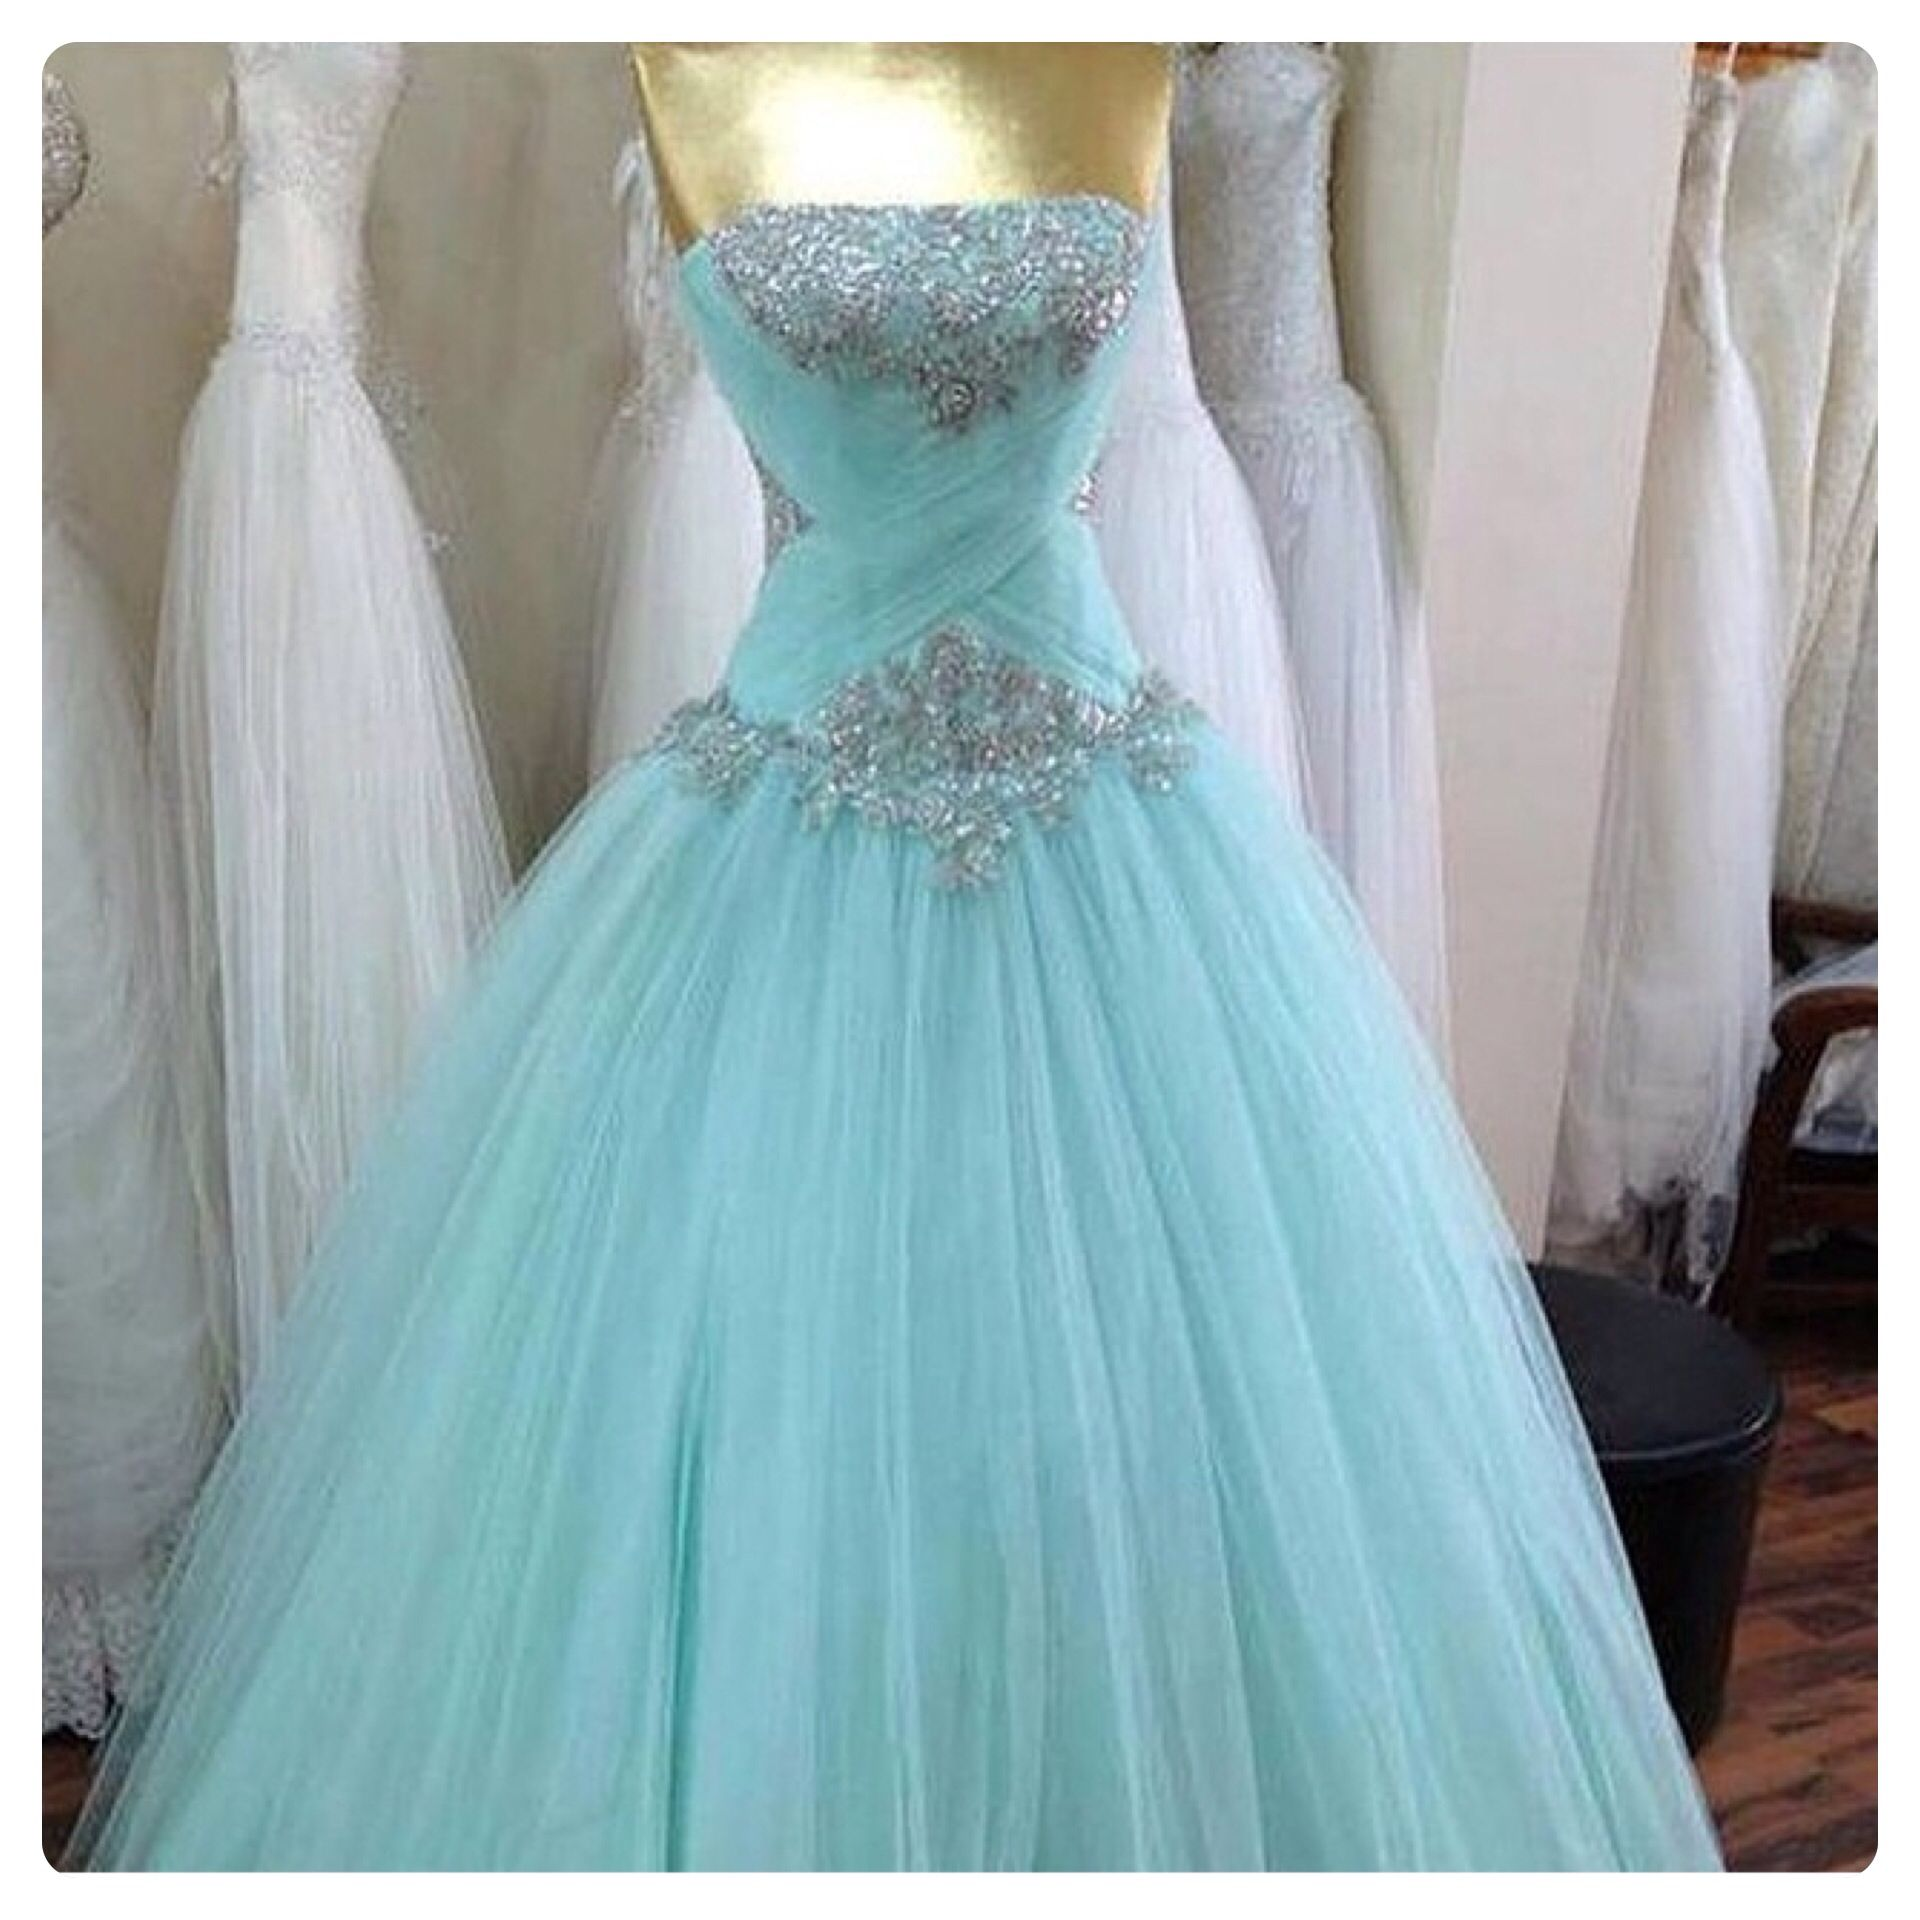 Nice dress | GOWNS | Pinterest | Nice dresses, Nice and Fancy